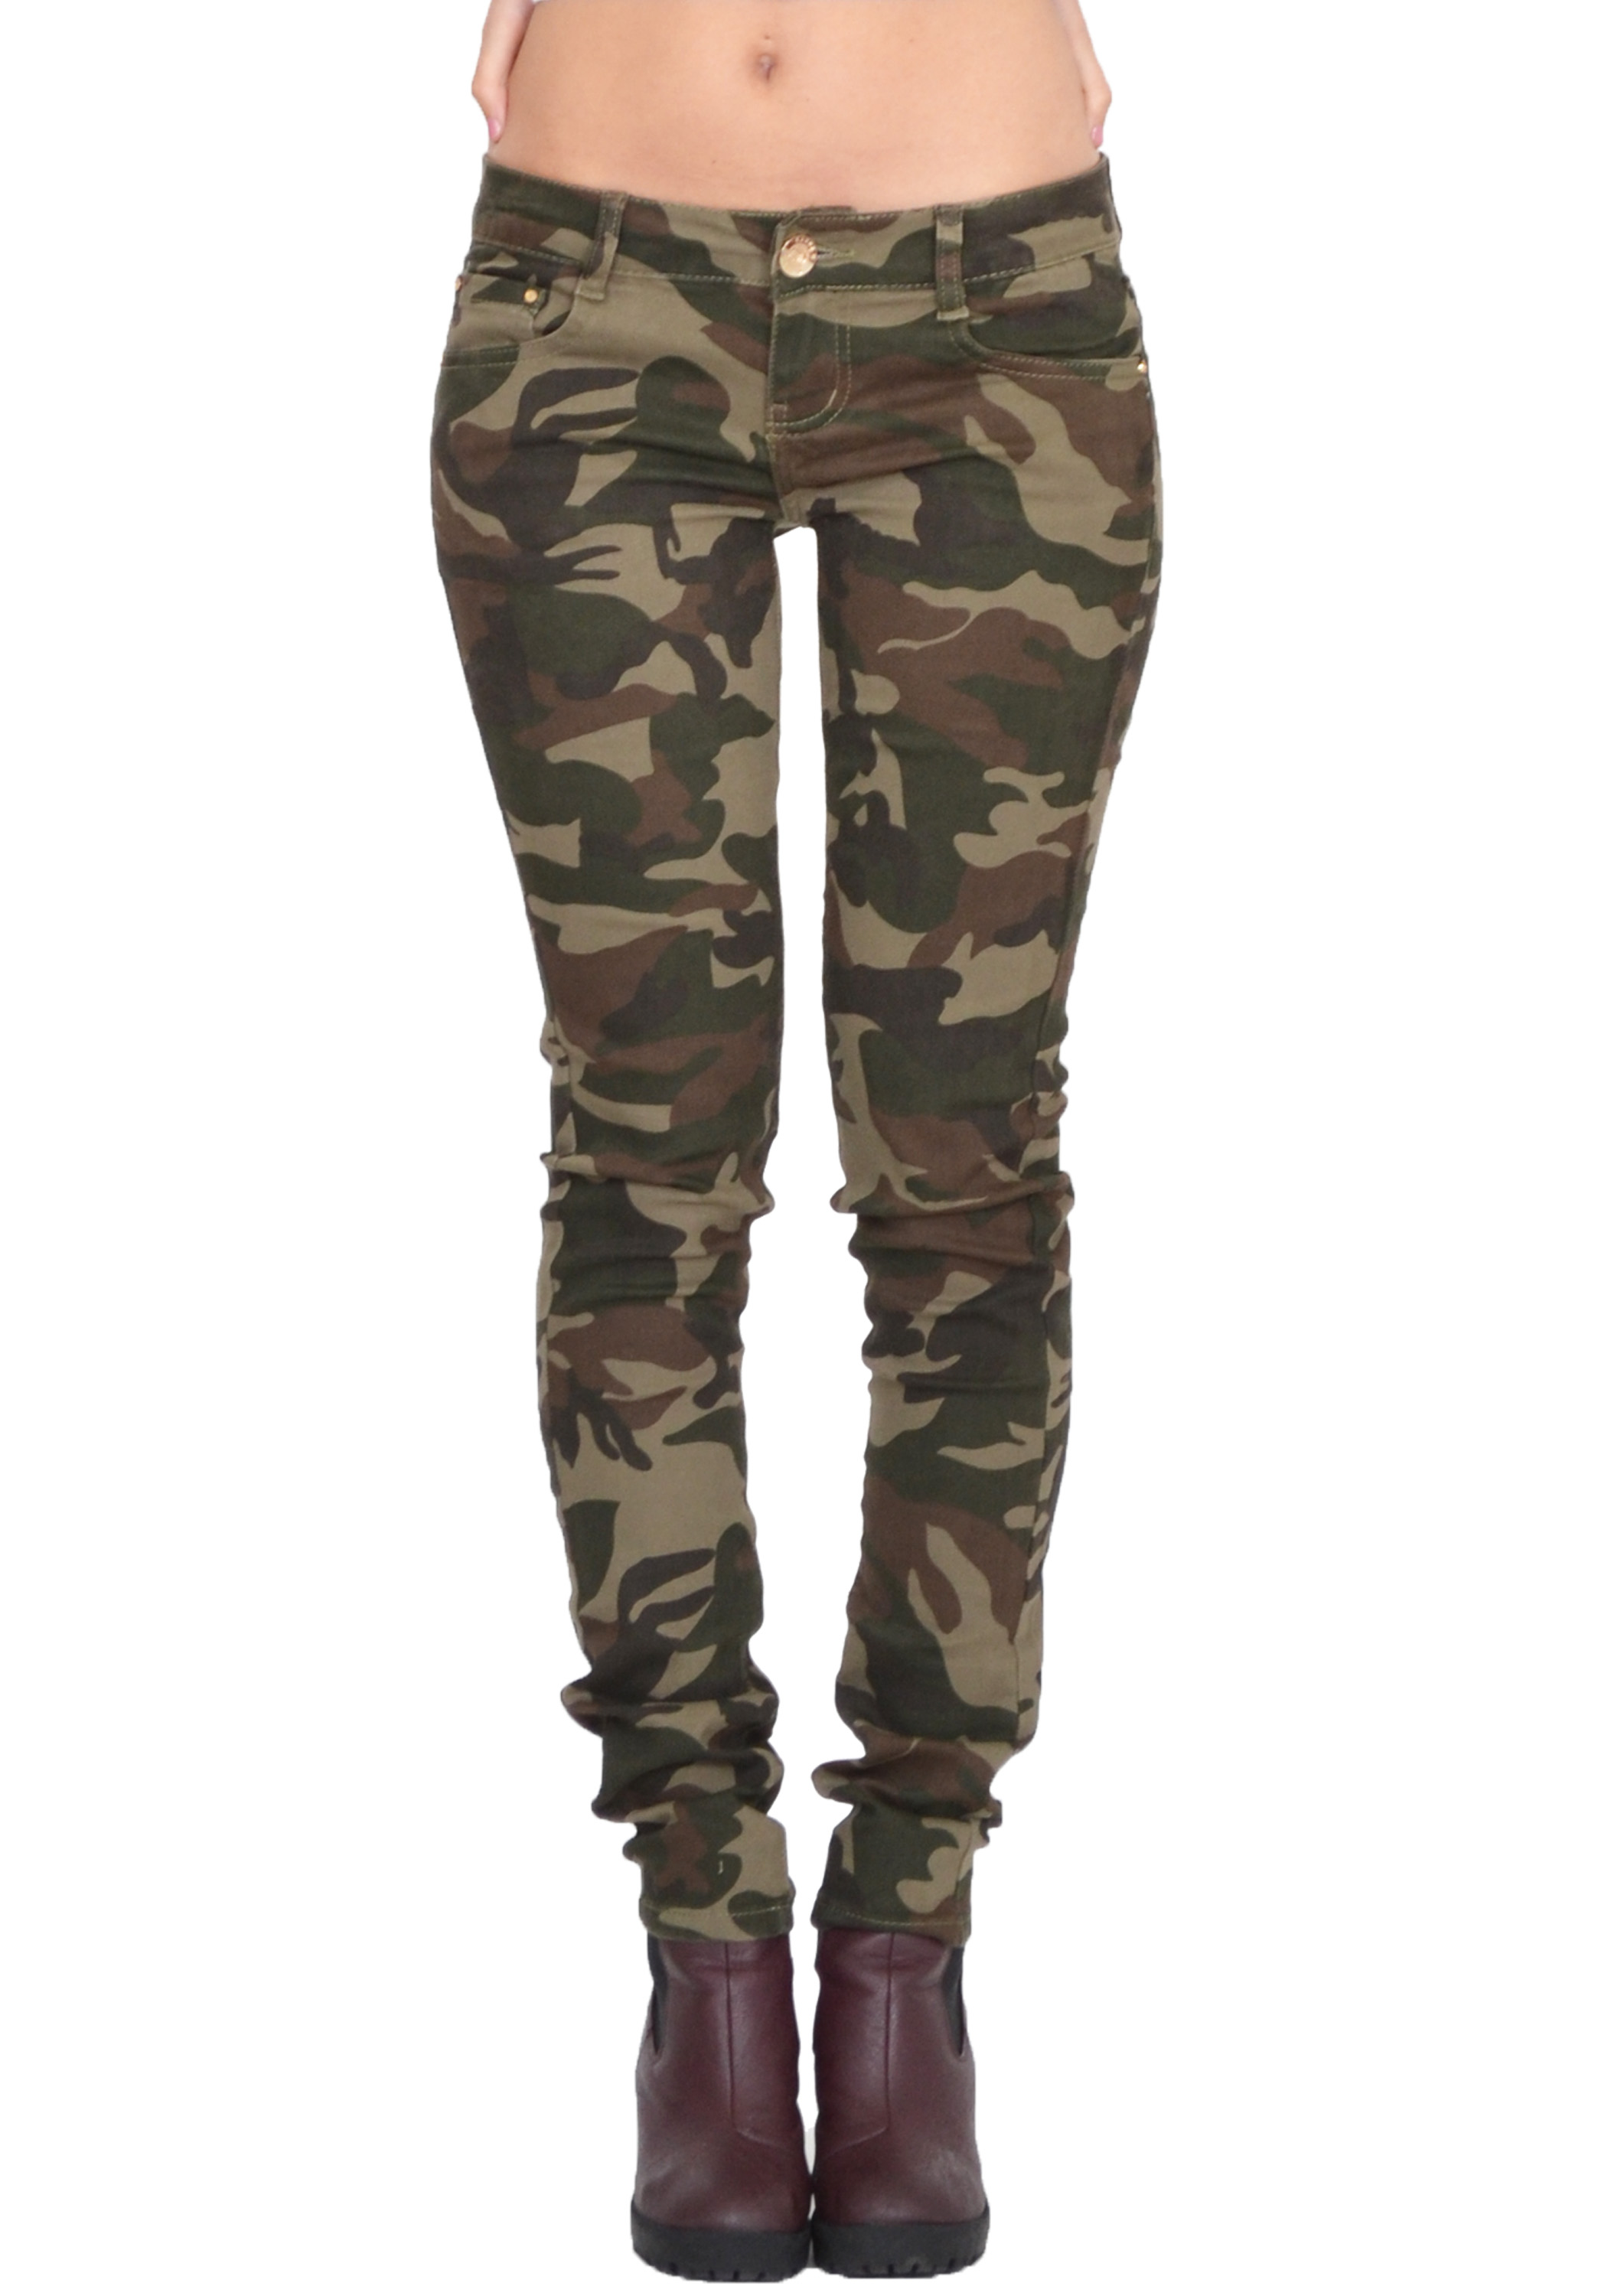 Military Pants Women Skinny. To choose durable, comfortable military pants women skinny online, DHgate Australia site is a great destination. We offer varieties of cheap pants wholesale for girls & children down pant in fashion which contain the one satisfying your taste.